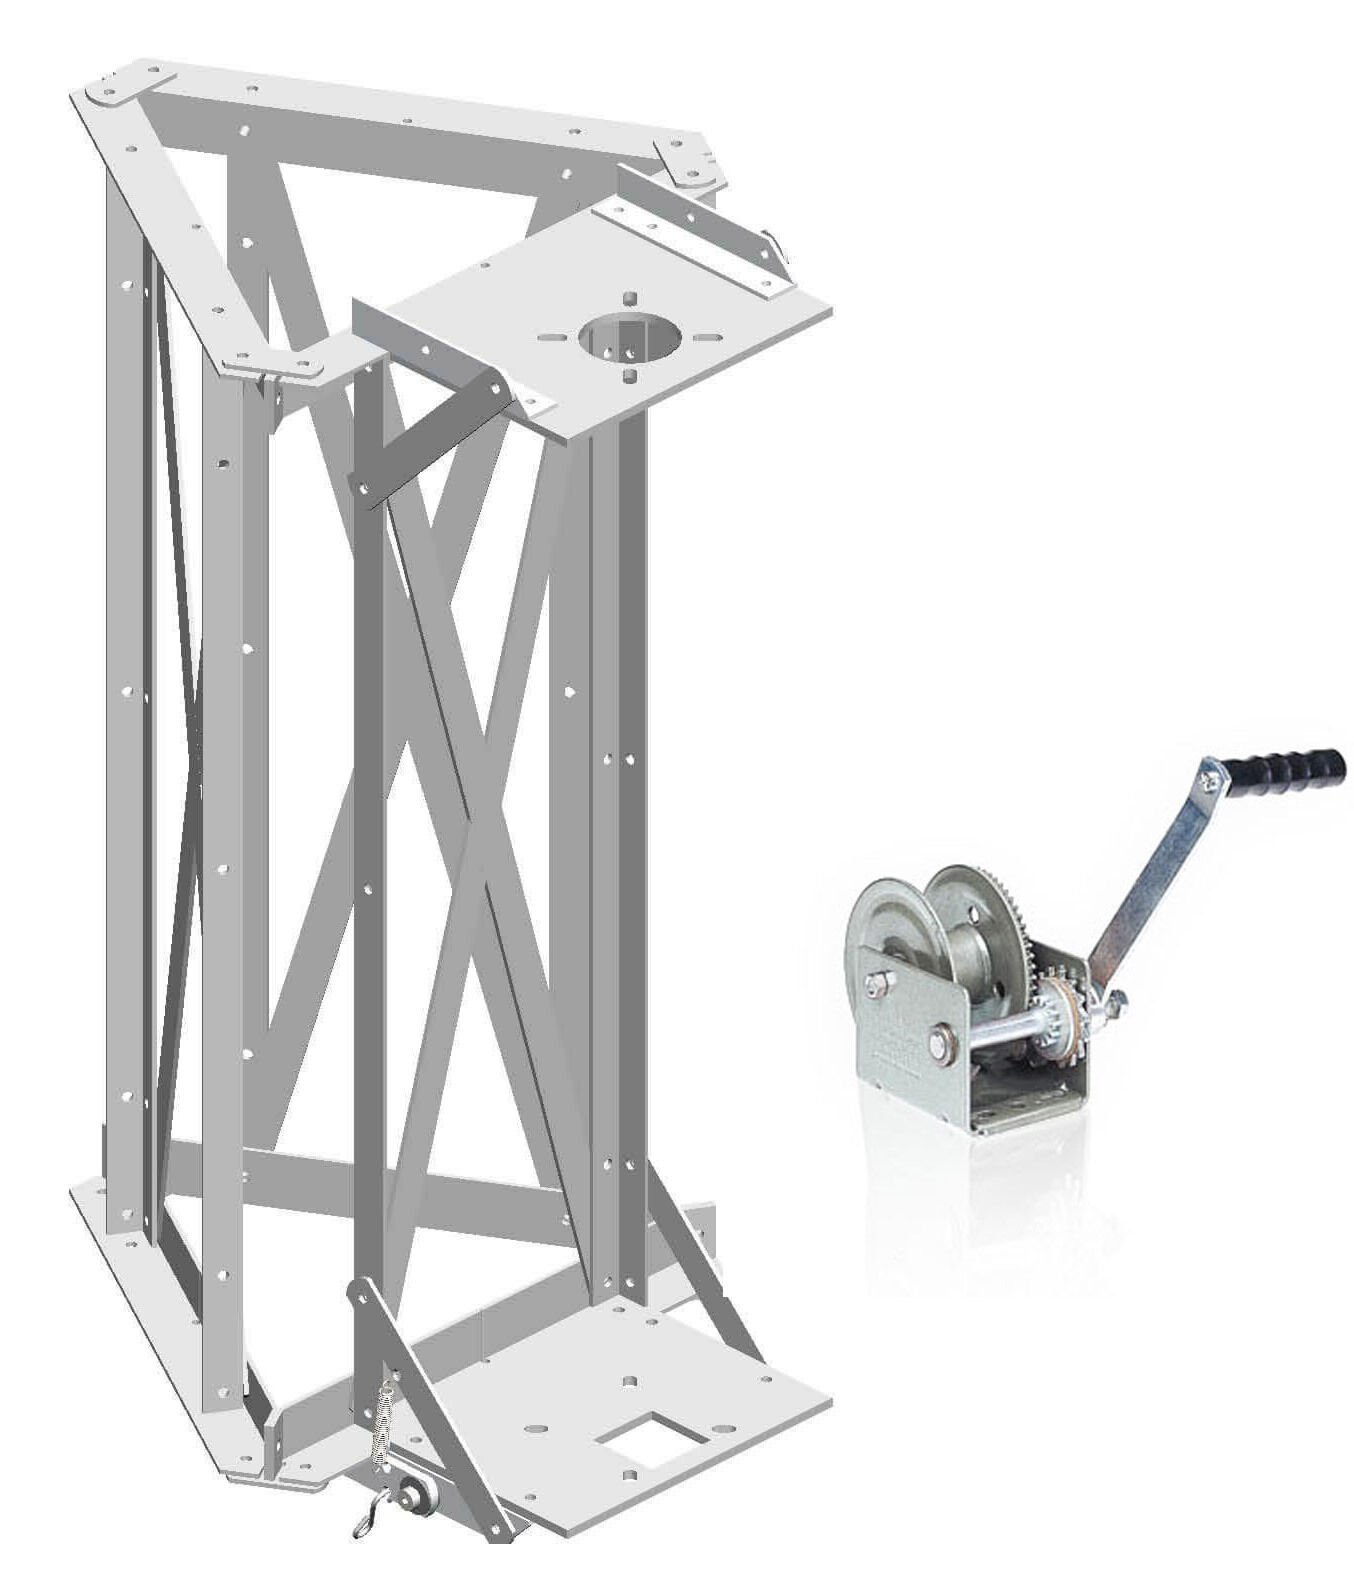 Glen Martin H-3 Hazer Tram System with Upgraded Brake Winch - for ROHN Towers . Buy it now for 541.00